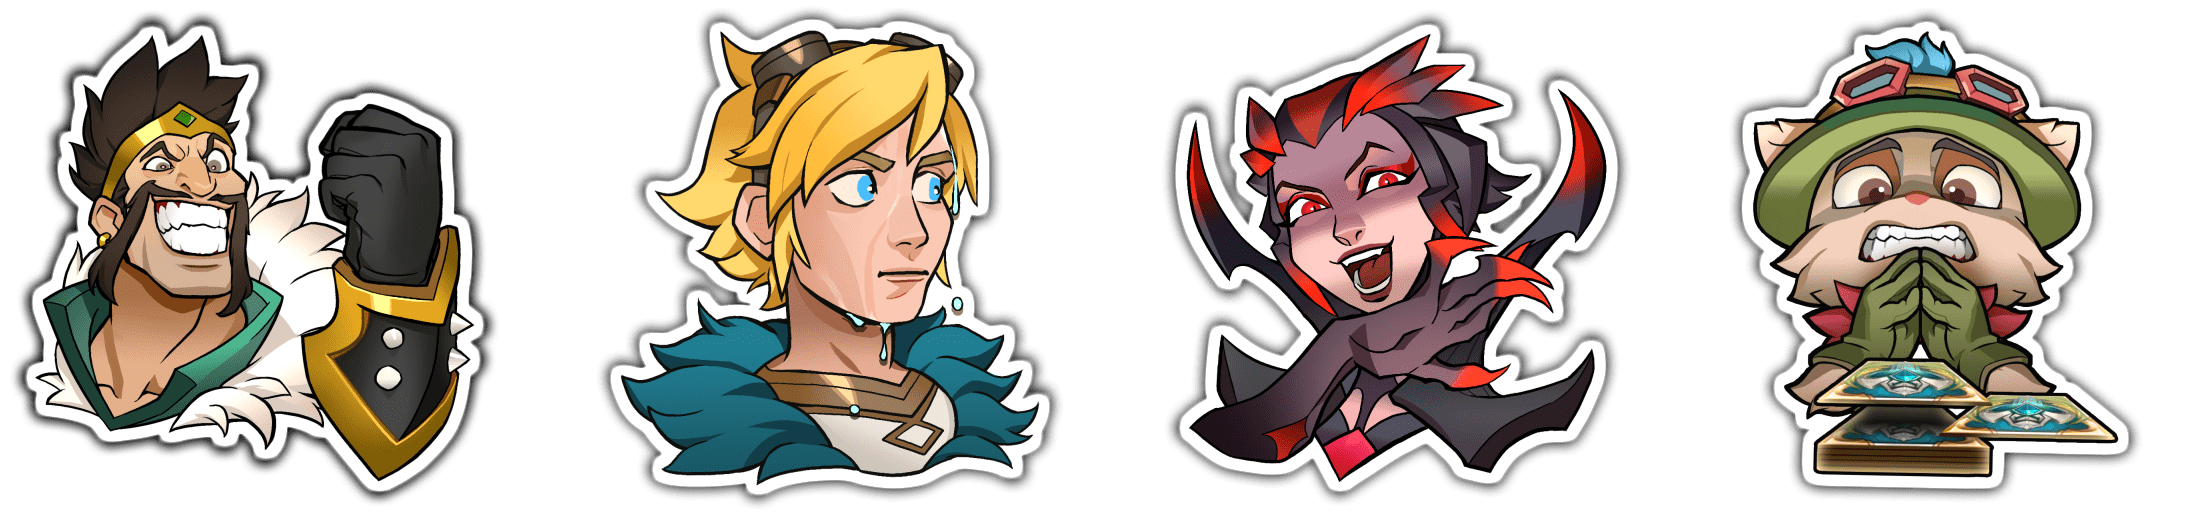 combined_emotes.png